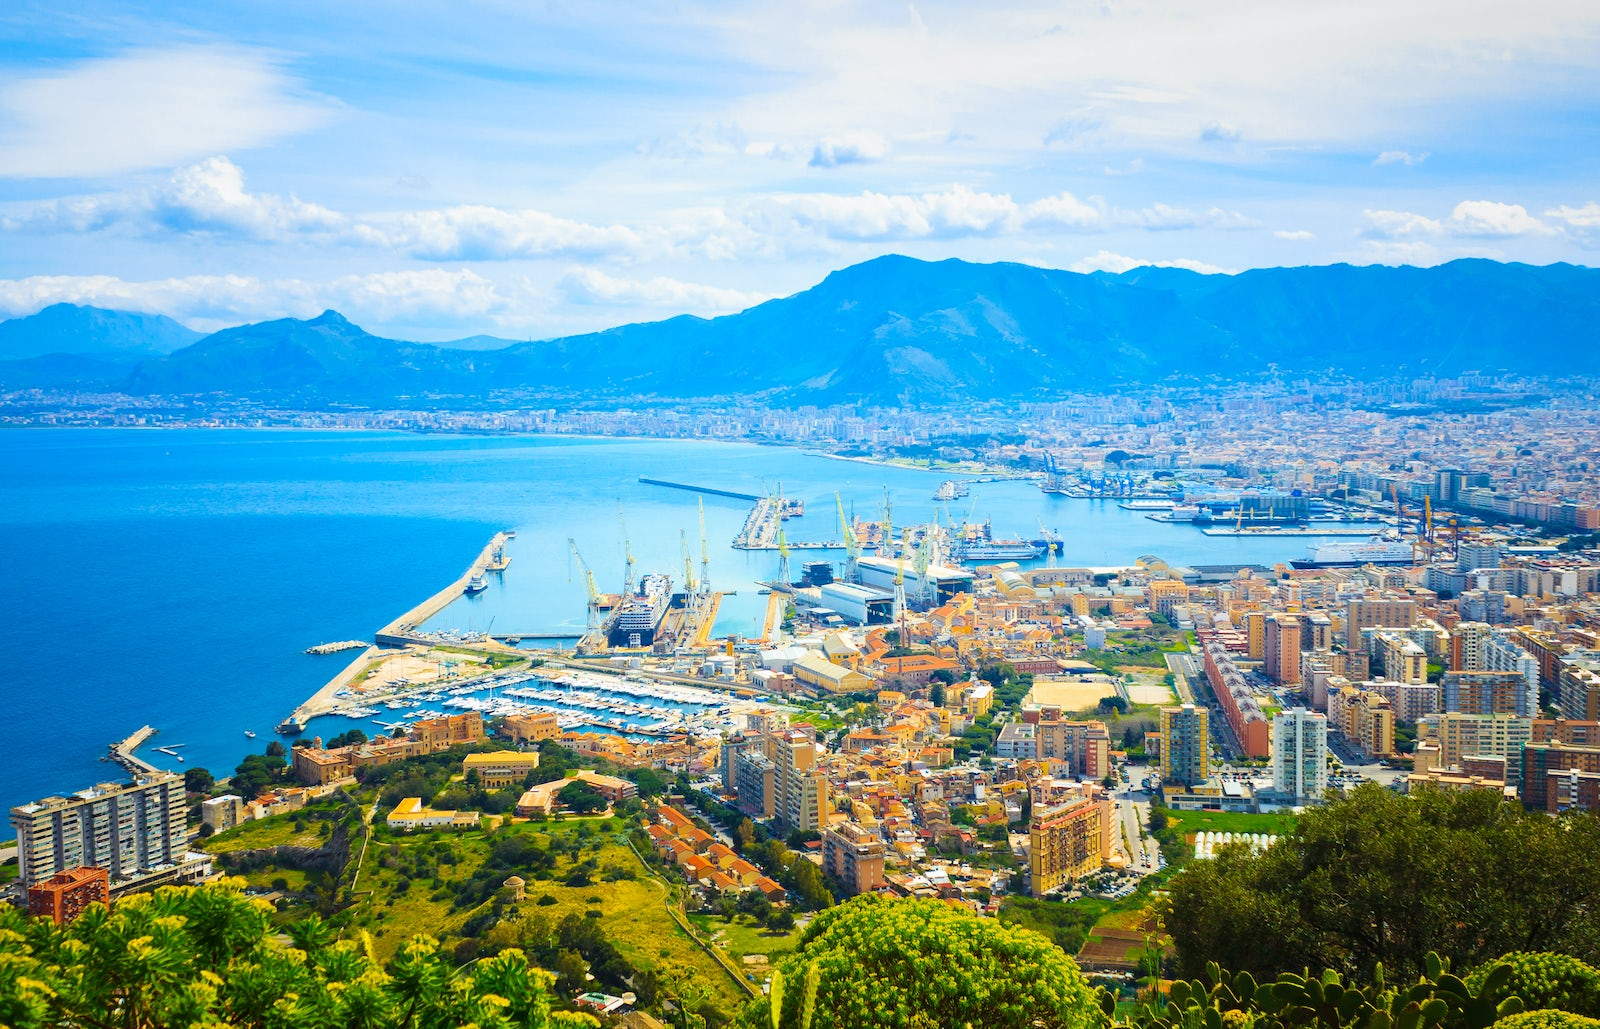 !i18n:en:data.cities:palermo.picture.caption